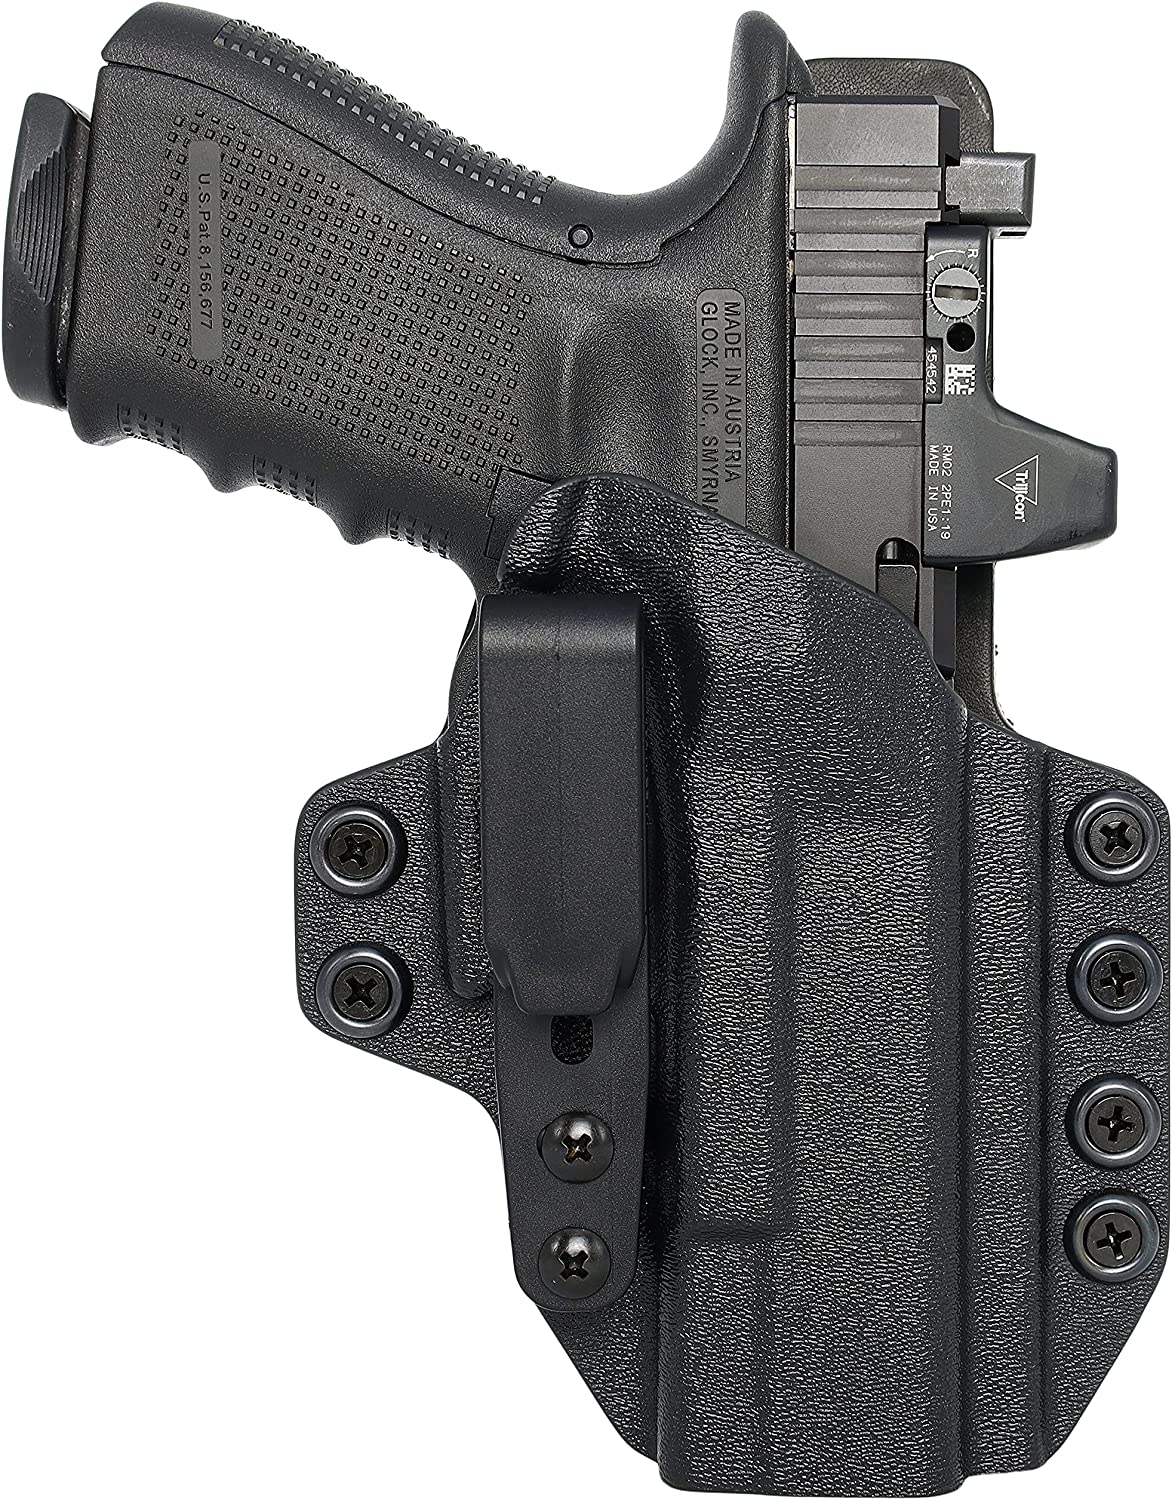 shopping Concealment Express Standard Leather Hybrid Challenge the lowest price of Japan Tuckable IWB Holster